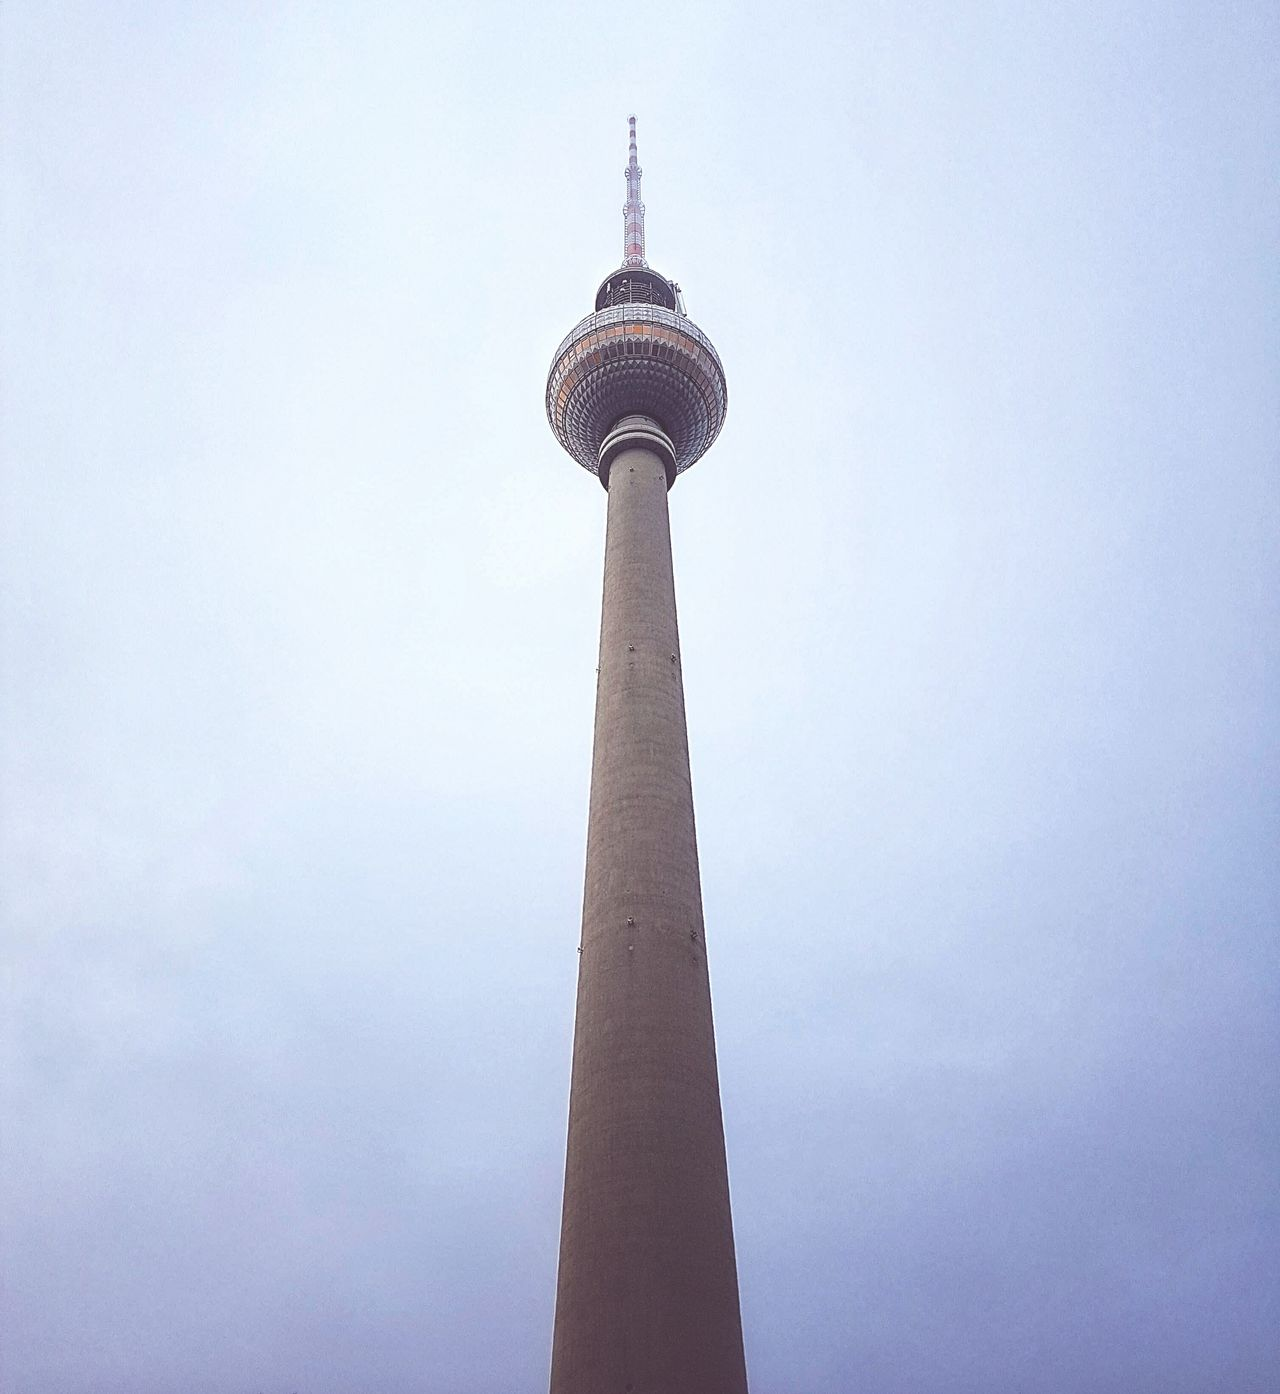 Communication Tower Tall - High City Travel Sphere Travel Destinations Global Communications Broadcasting Technology Antenna - Aerial Tourism Outdoors Television Industry Low Angle View Sky Connection No People Aerospace Industry Skyscraper